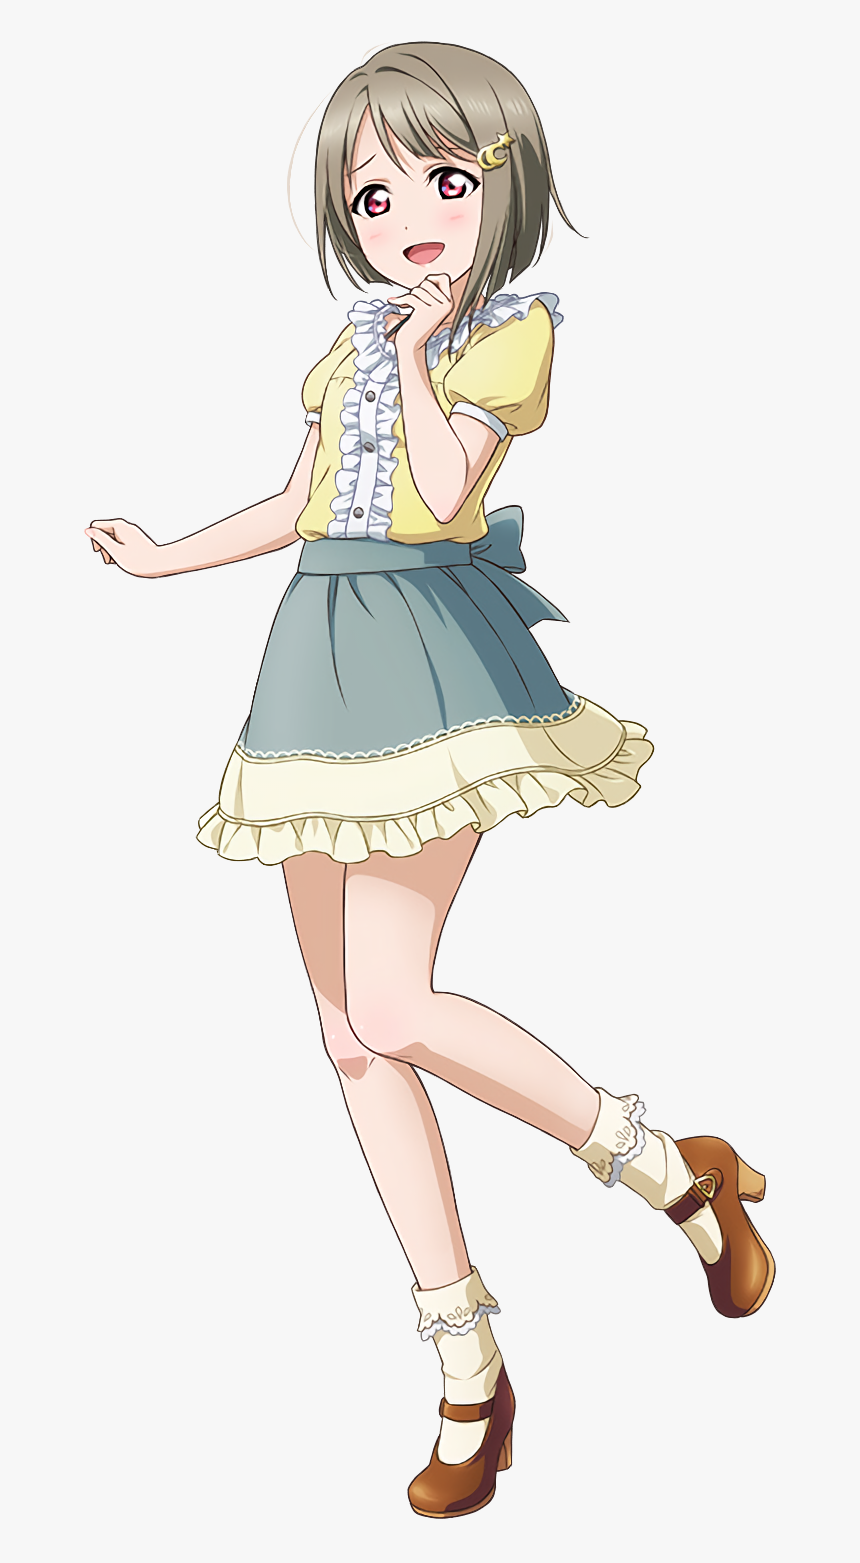 Love Live Wikia - Love Live Pdp Kasumi, HD Png Download, Free Download